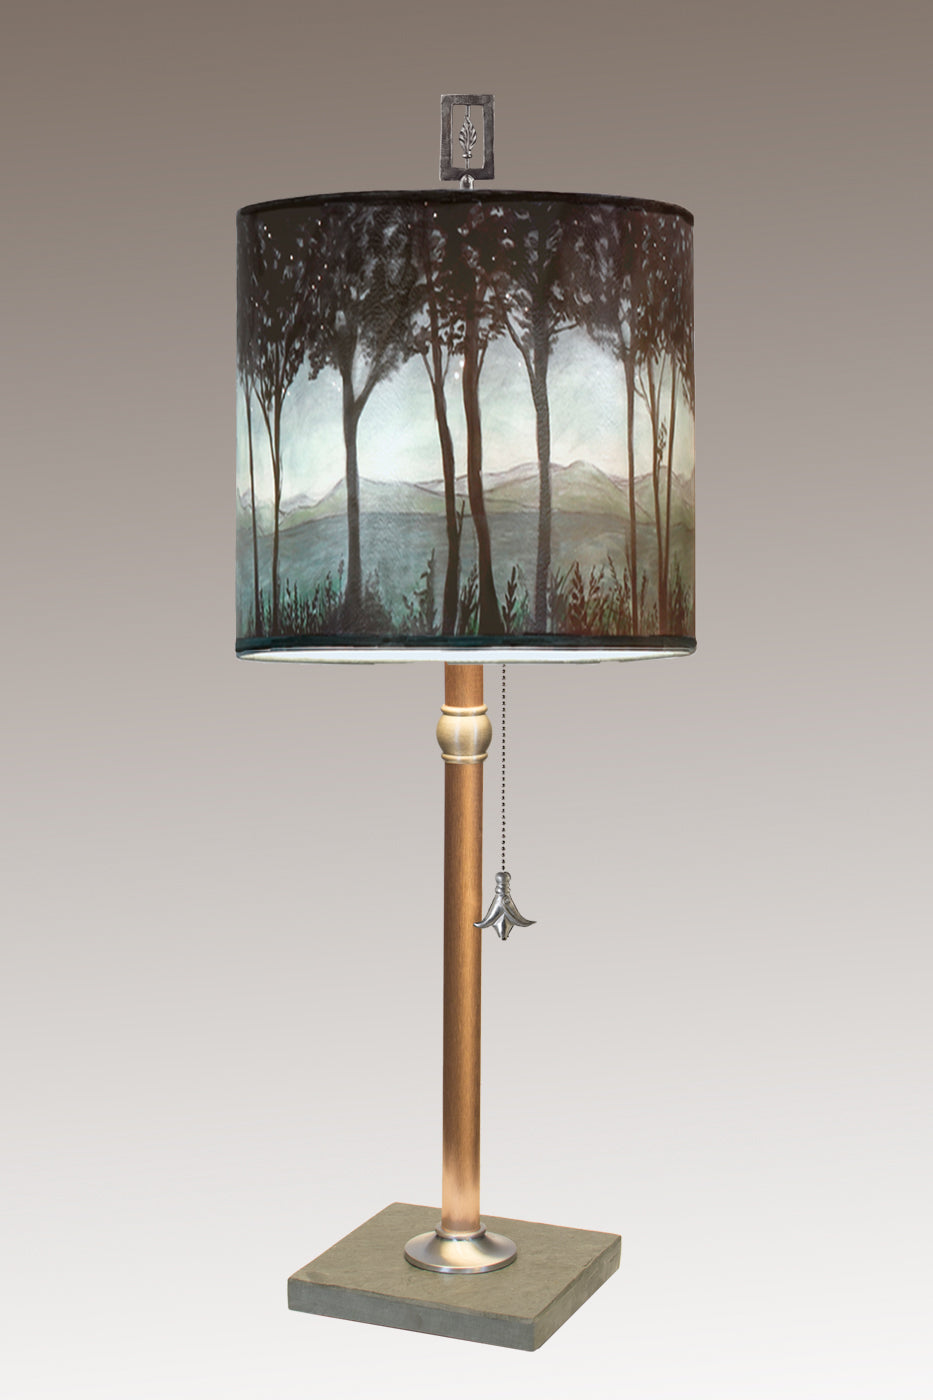 Copper Table Lamp with Medium Drum Shade in Twilight